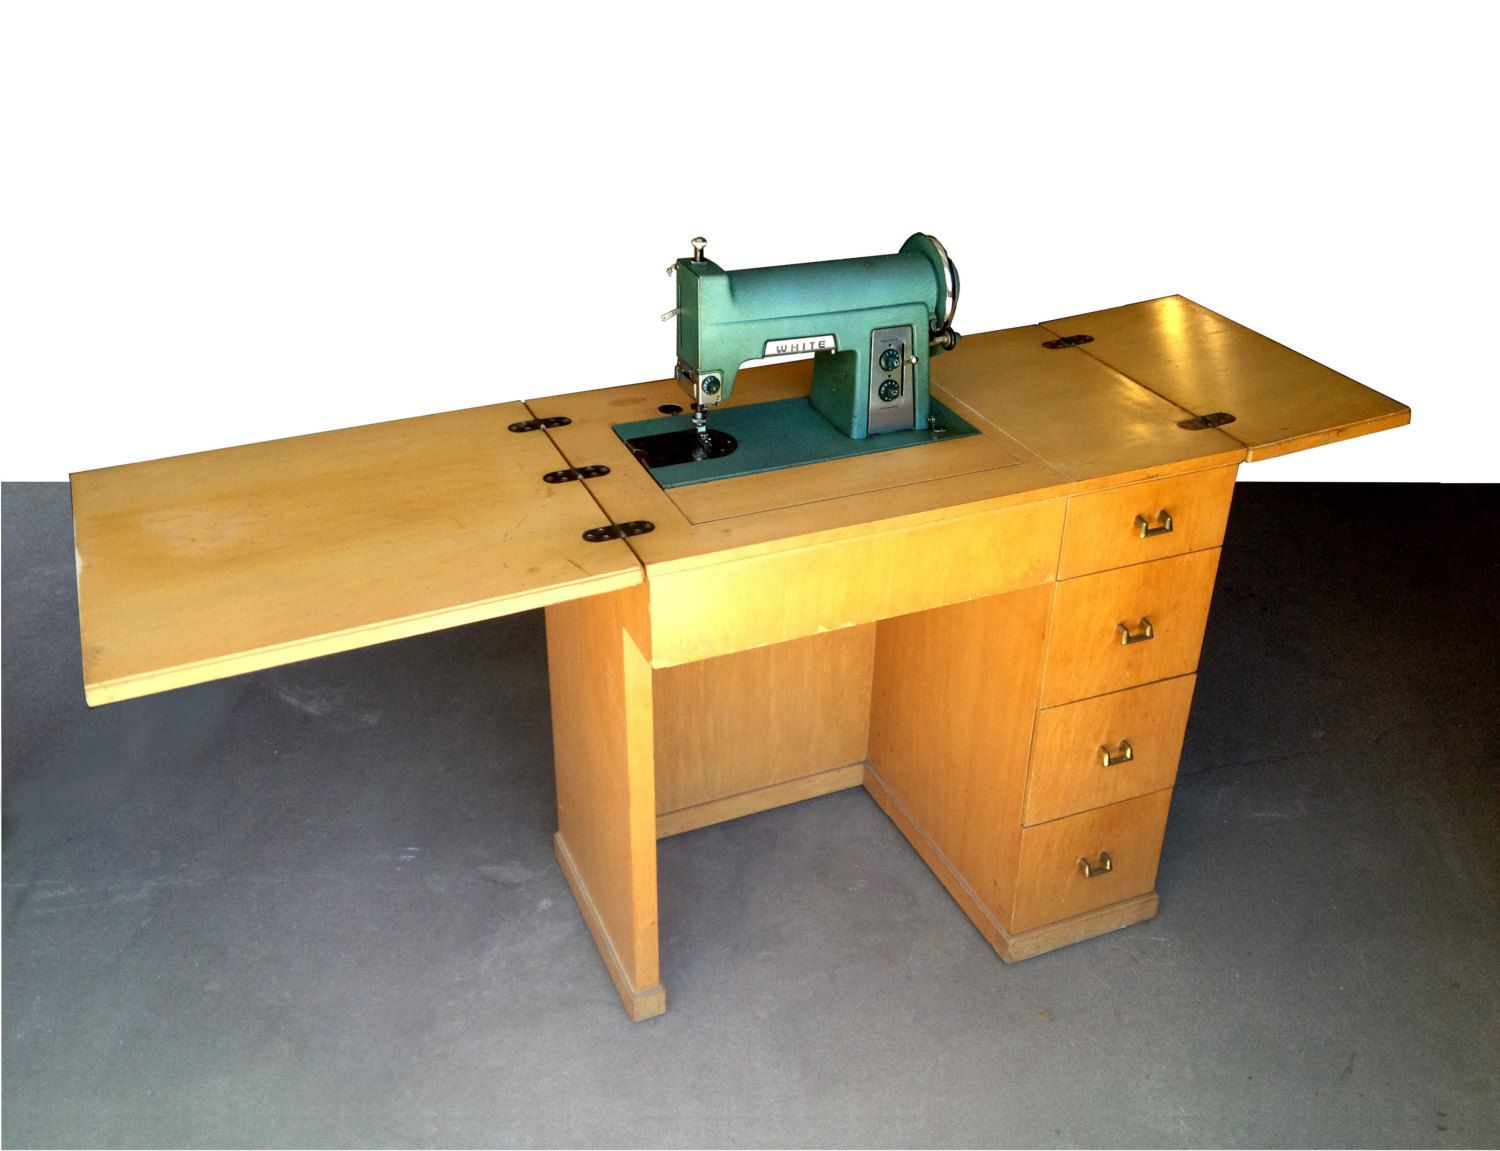 diy folding sewing table - Google Search | Folding sewing ...